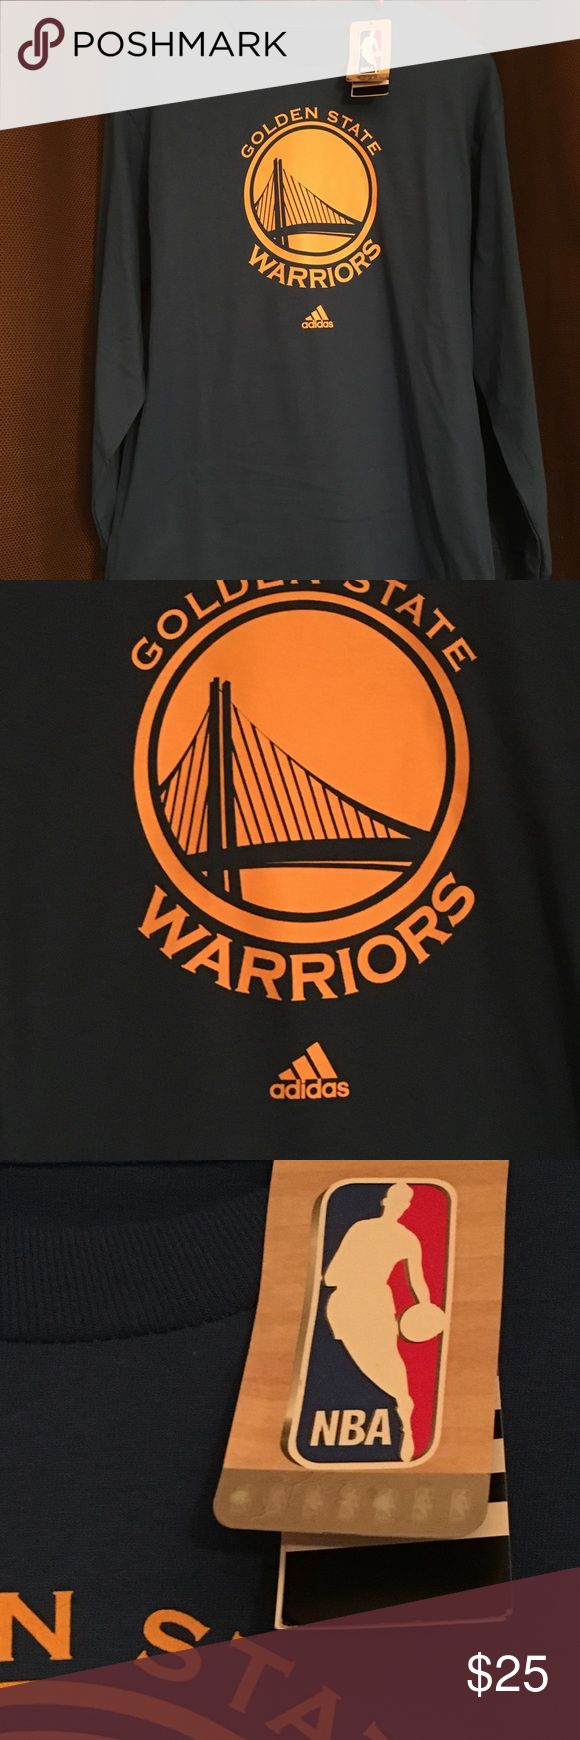 Golden State Warriors - Long Sleeve Tee Brand new, never worn. Men's Golden State Warriors long sleeve tee shirt. Makes a great Christmas gift! Comes from a non-smoking home. Adidas Shirts Tees - Long Sleeve